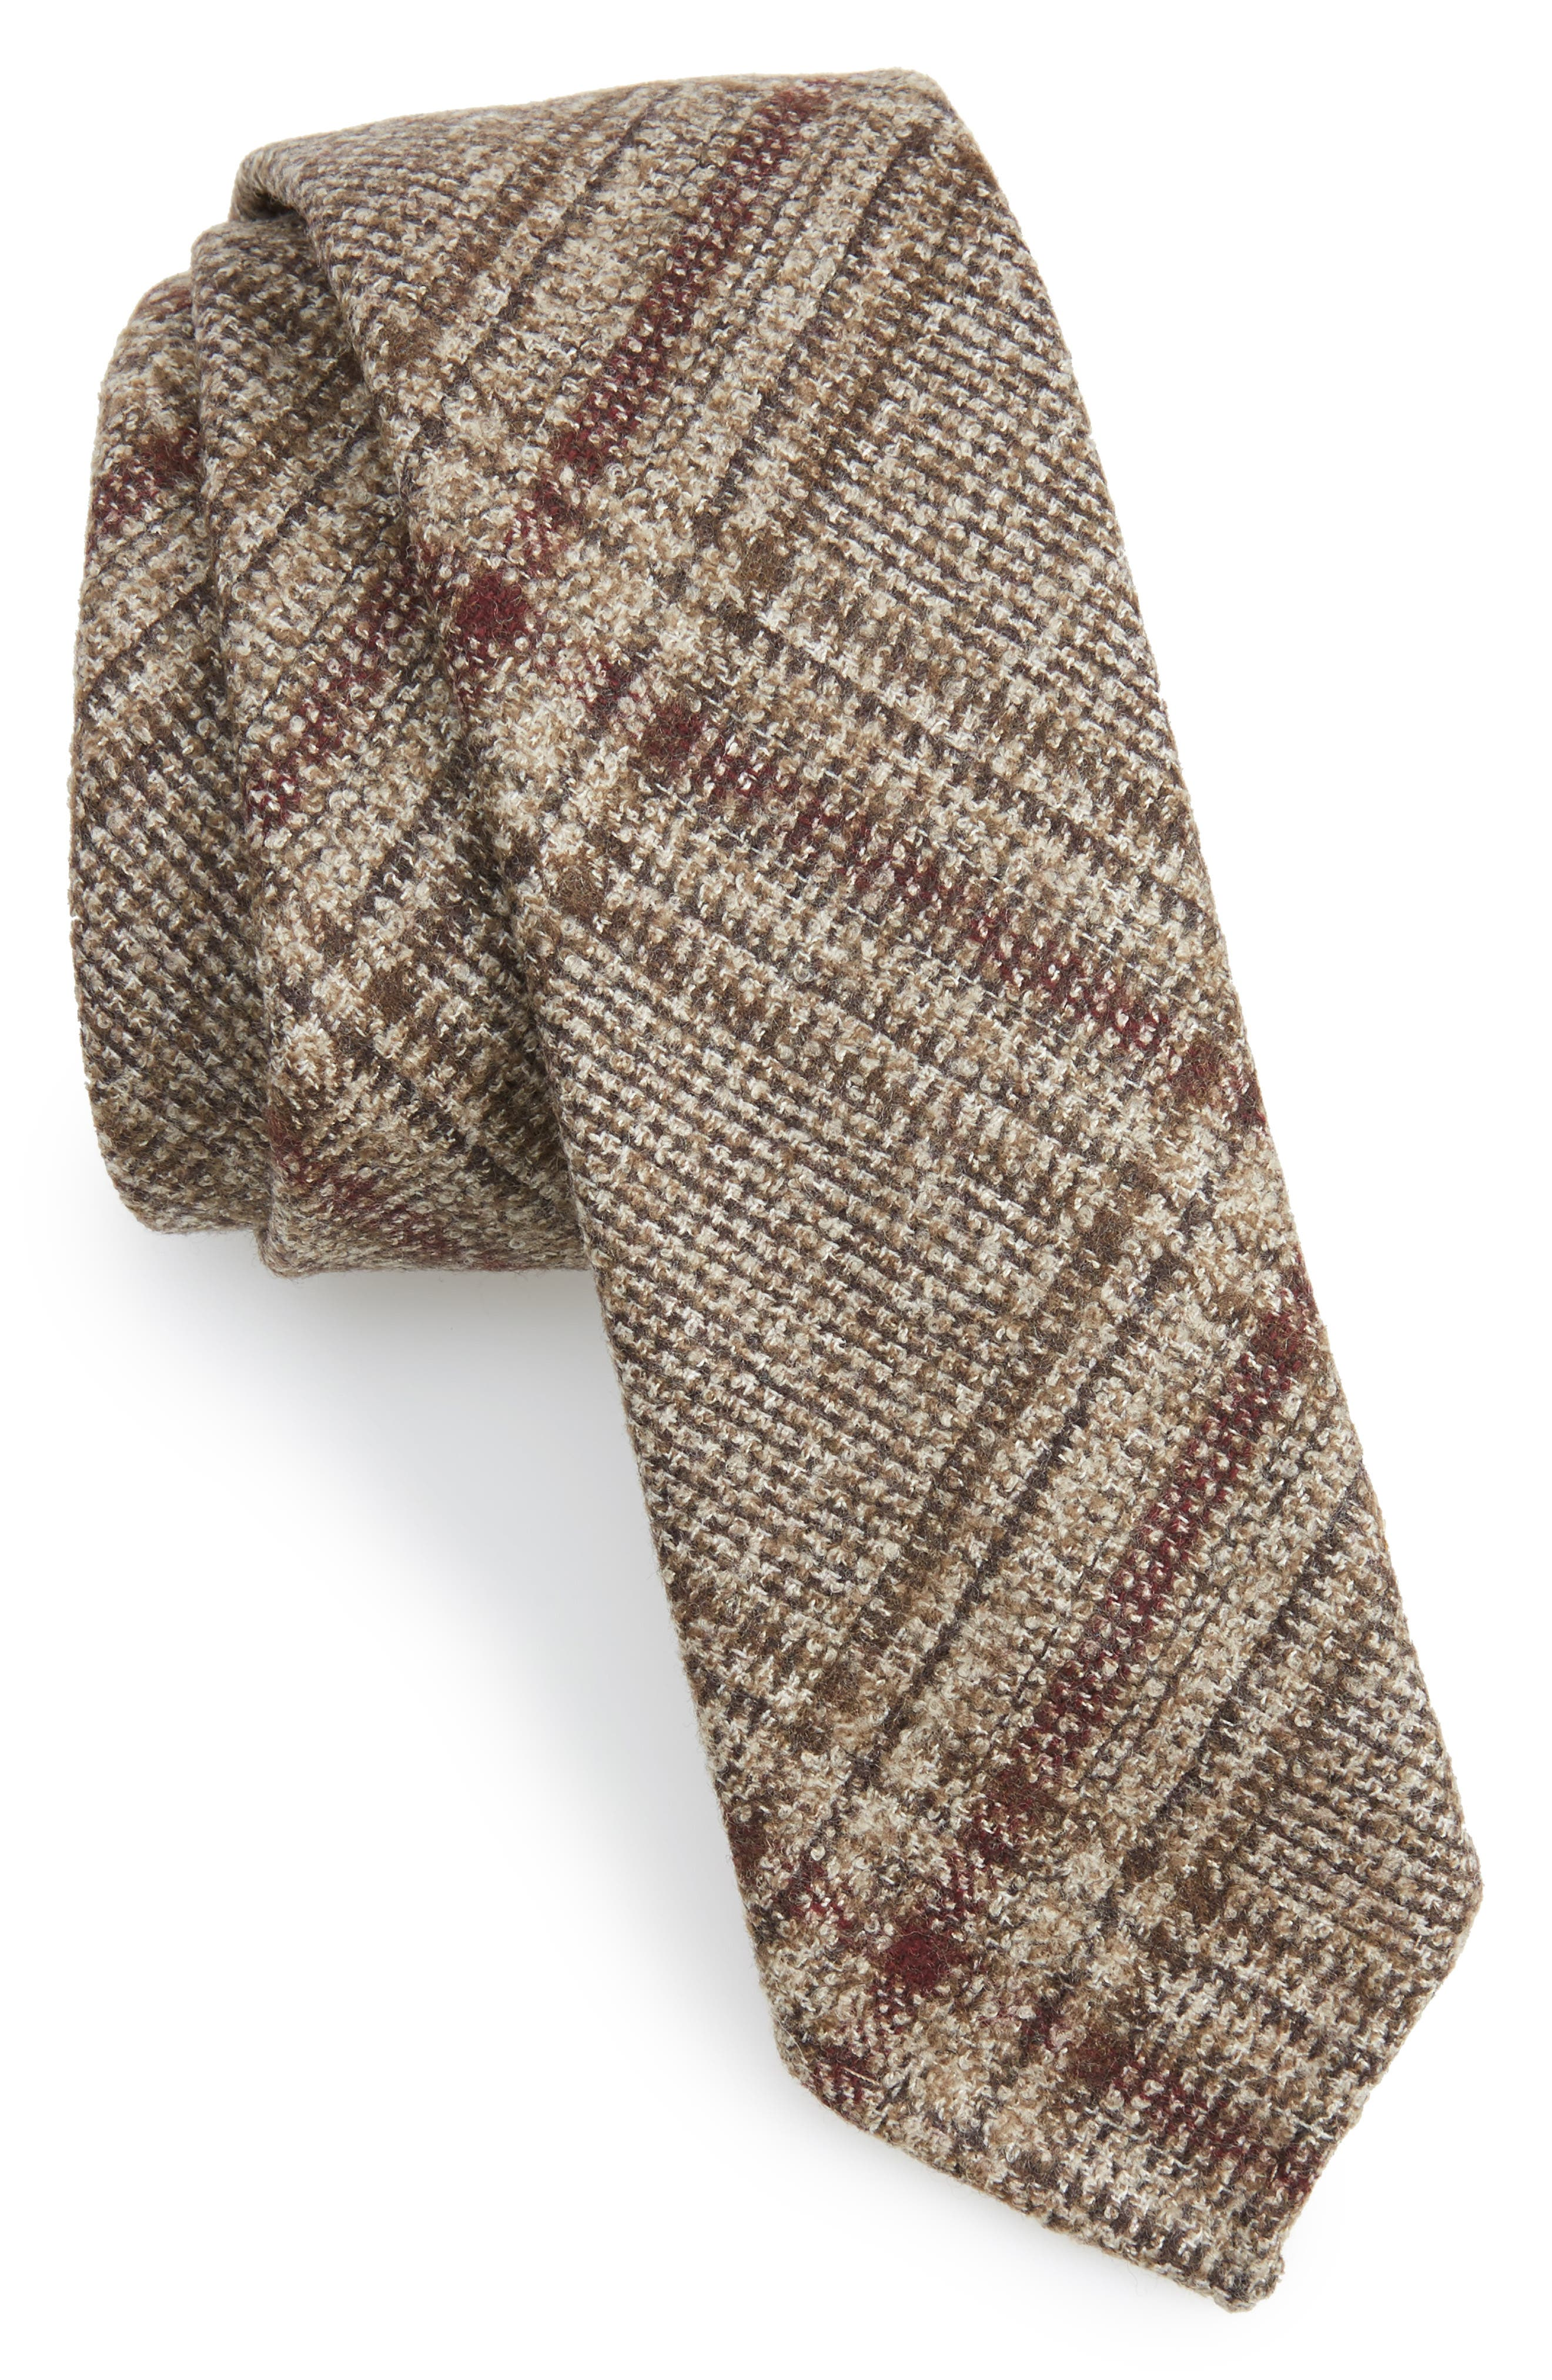 Glencheck Wool Blend Skinny Tie,                         Main,                         color, 255